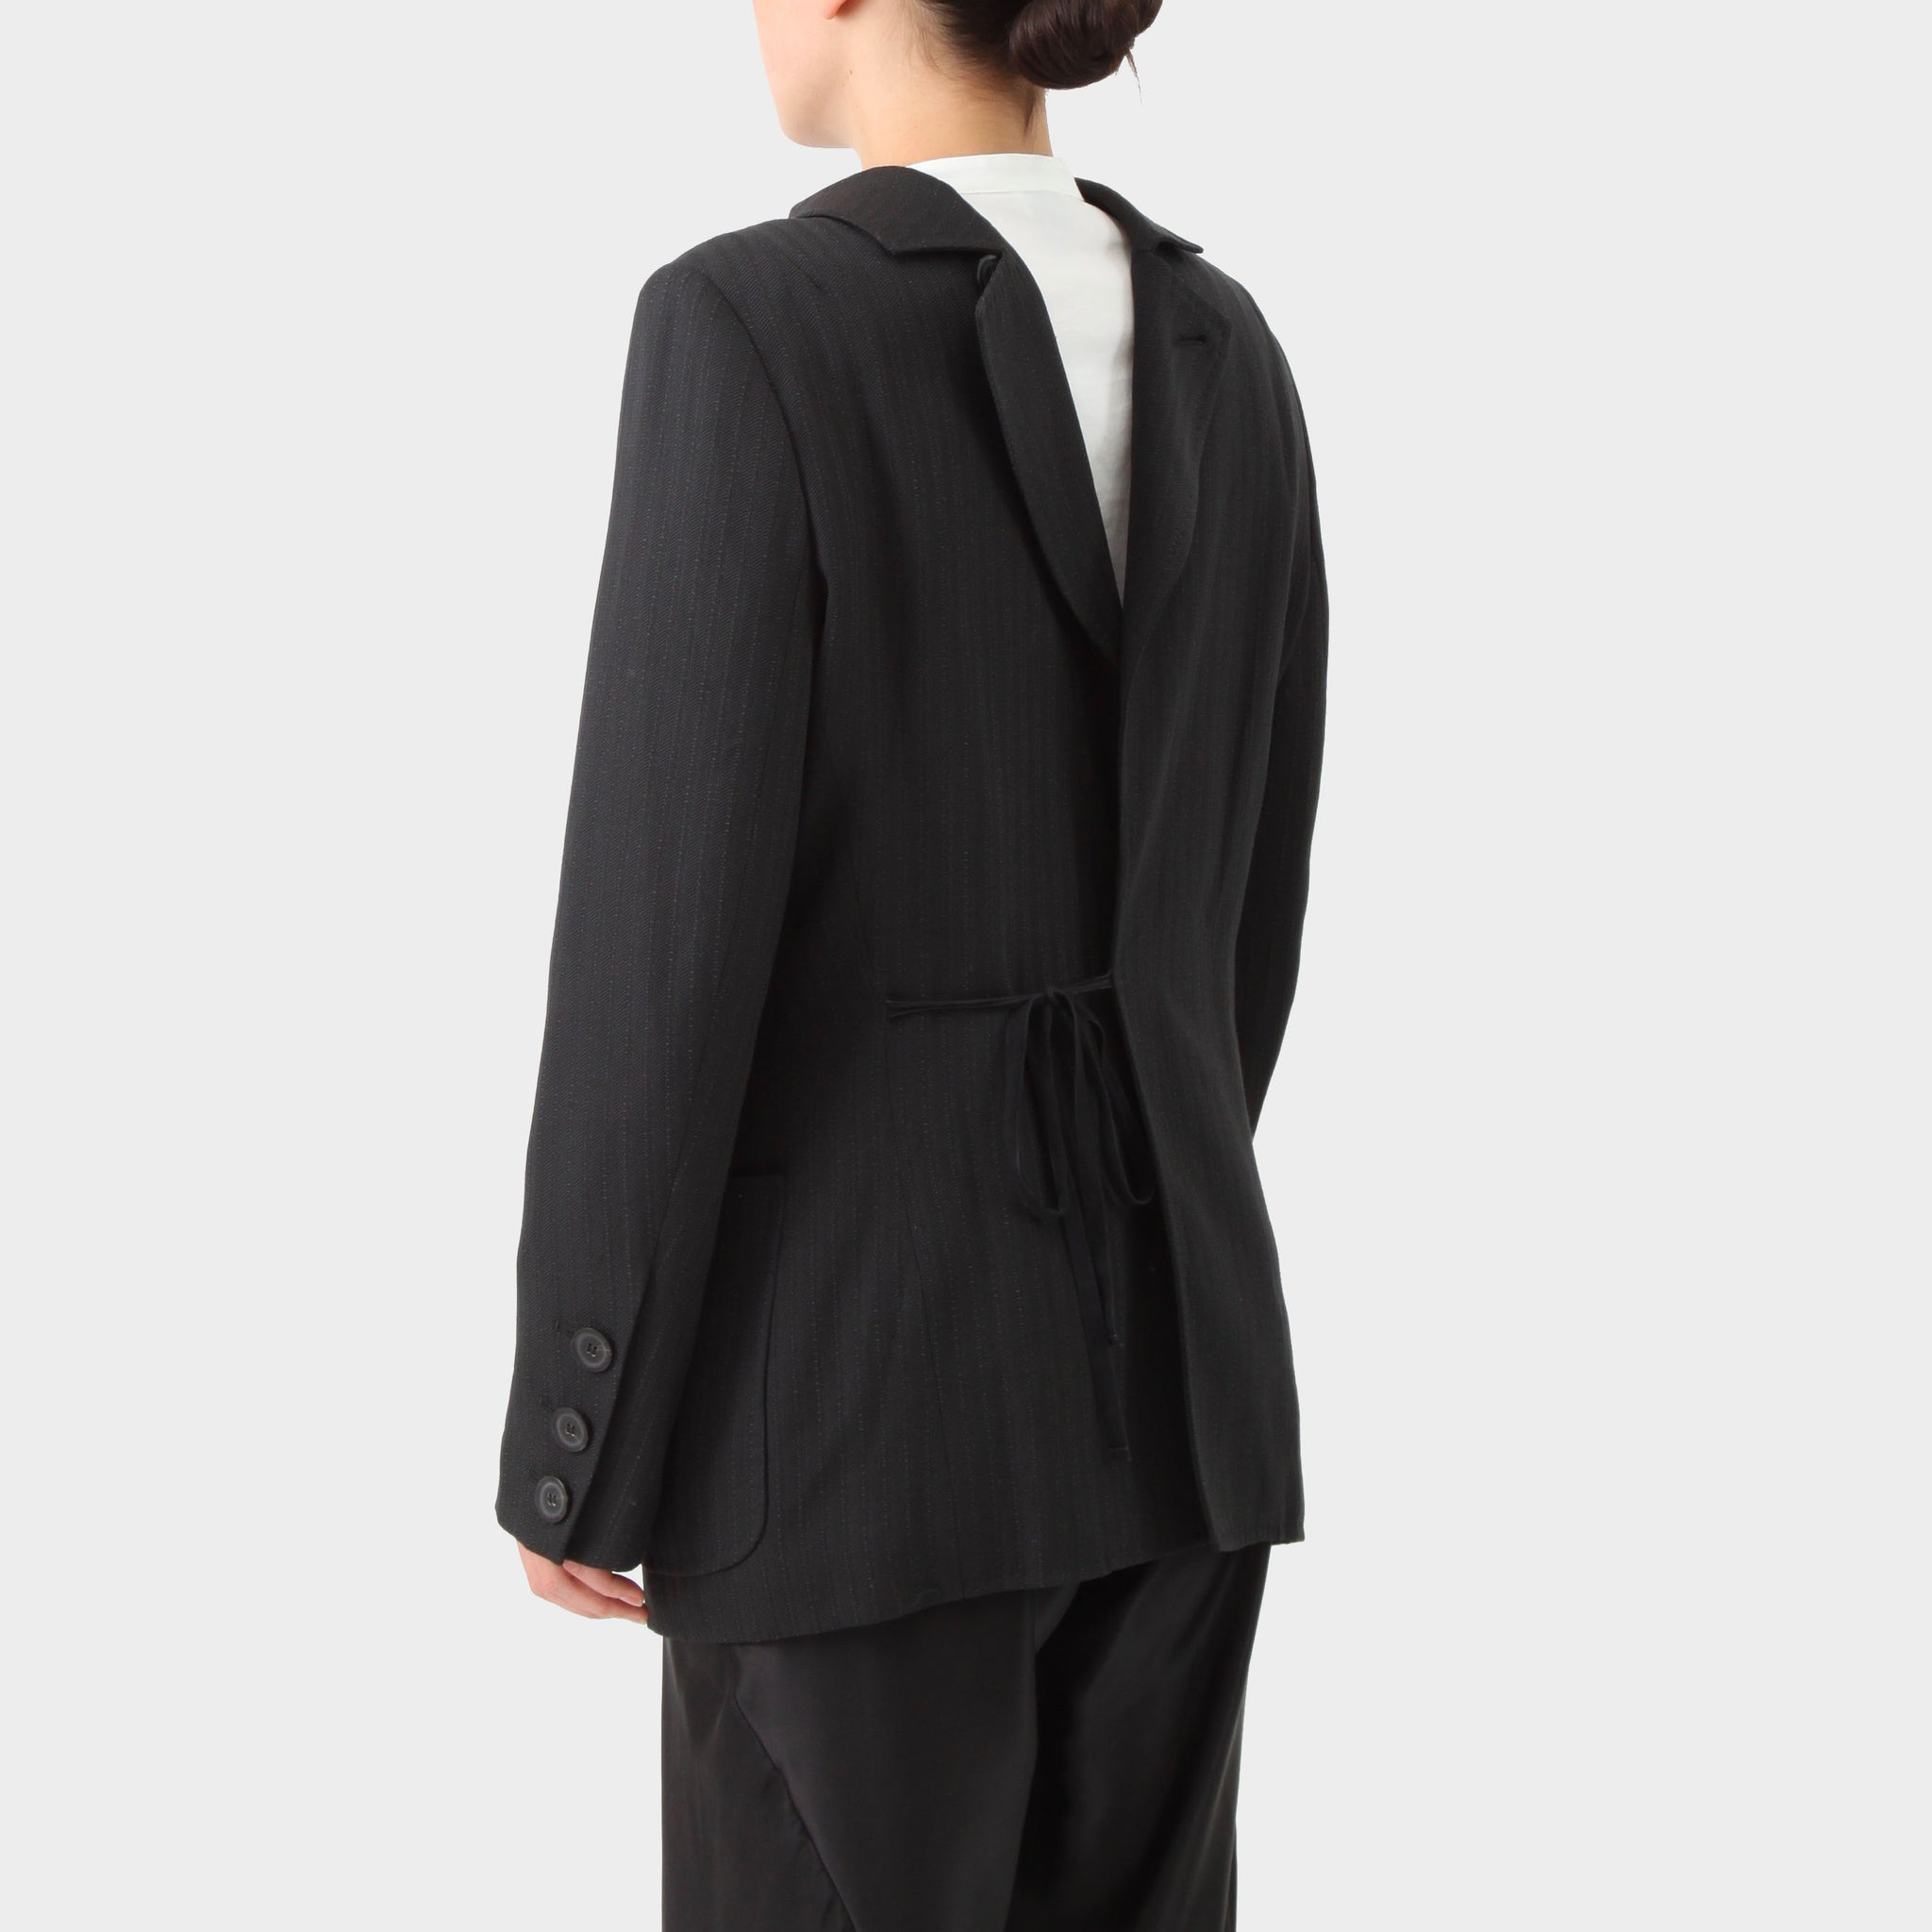 Ann Demeulemeester Vintage Backwards Tailored Jacket